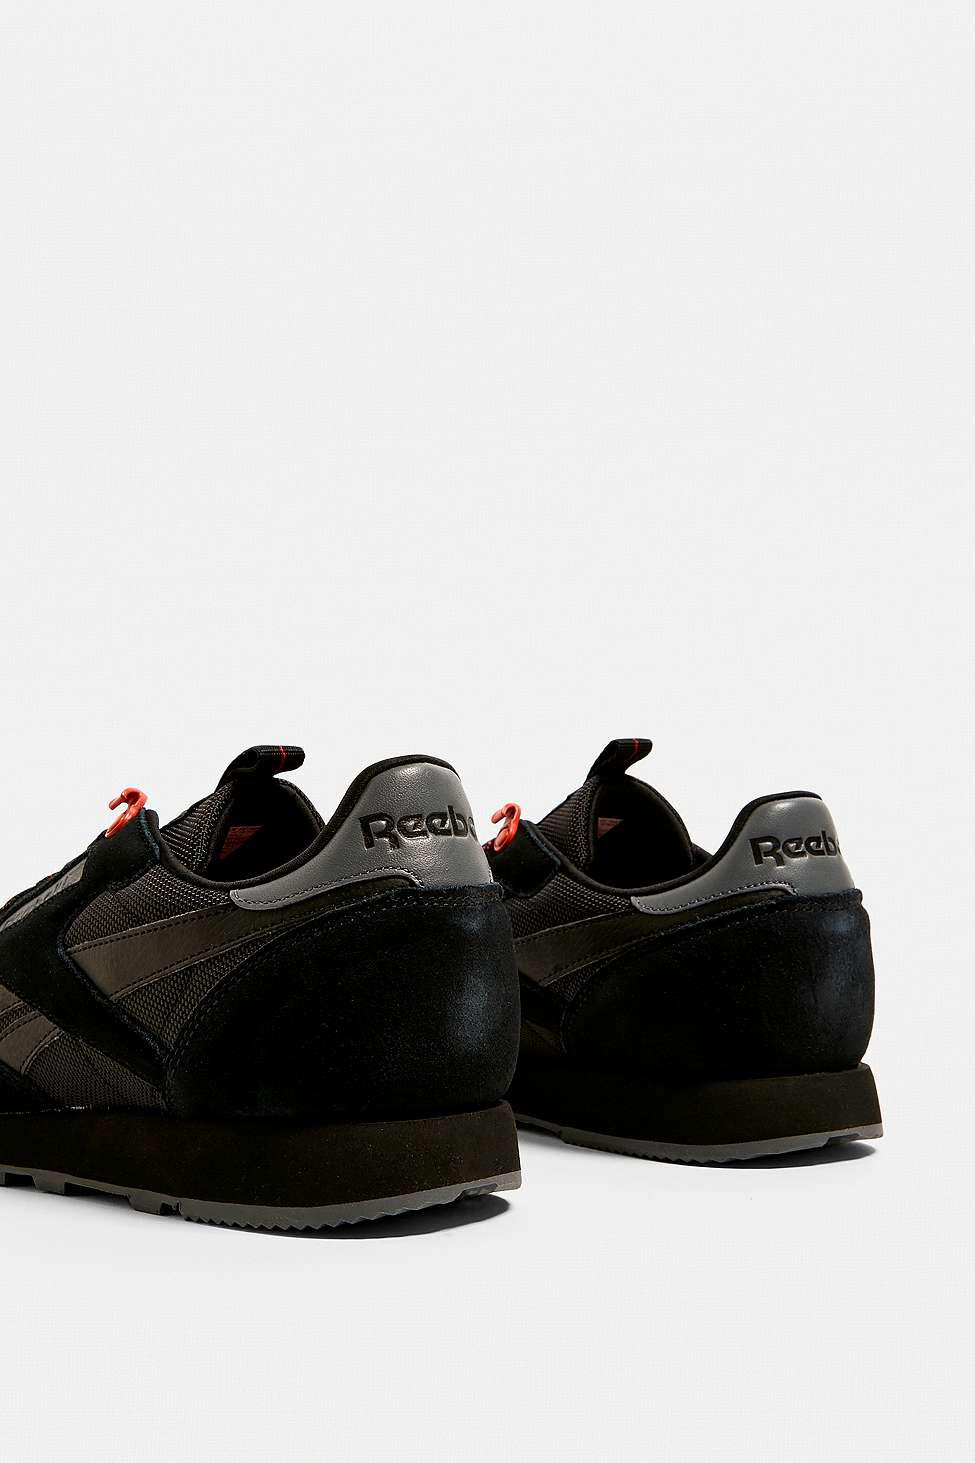 6f7c994671c5 Reebok Classic Black And Carotene Trainers - Mens Uk 8 in Black for .